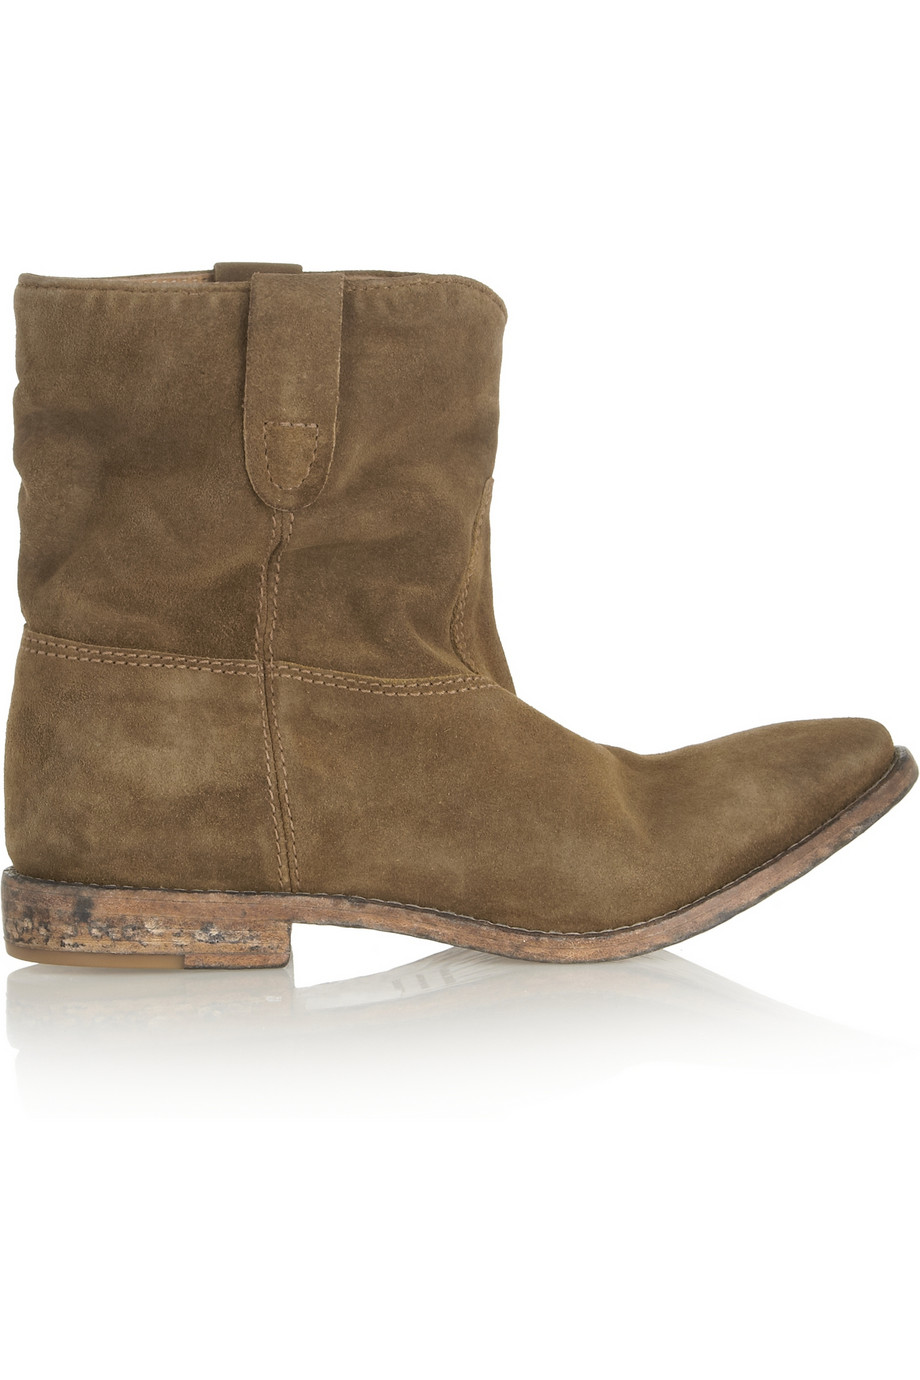 2dc572a9e4b1 Isabel Marant Crisi Suede Concealed Wedge Biker Boots in Brown - Lyst